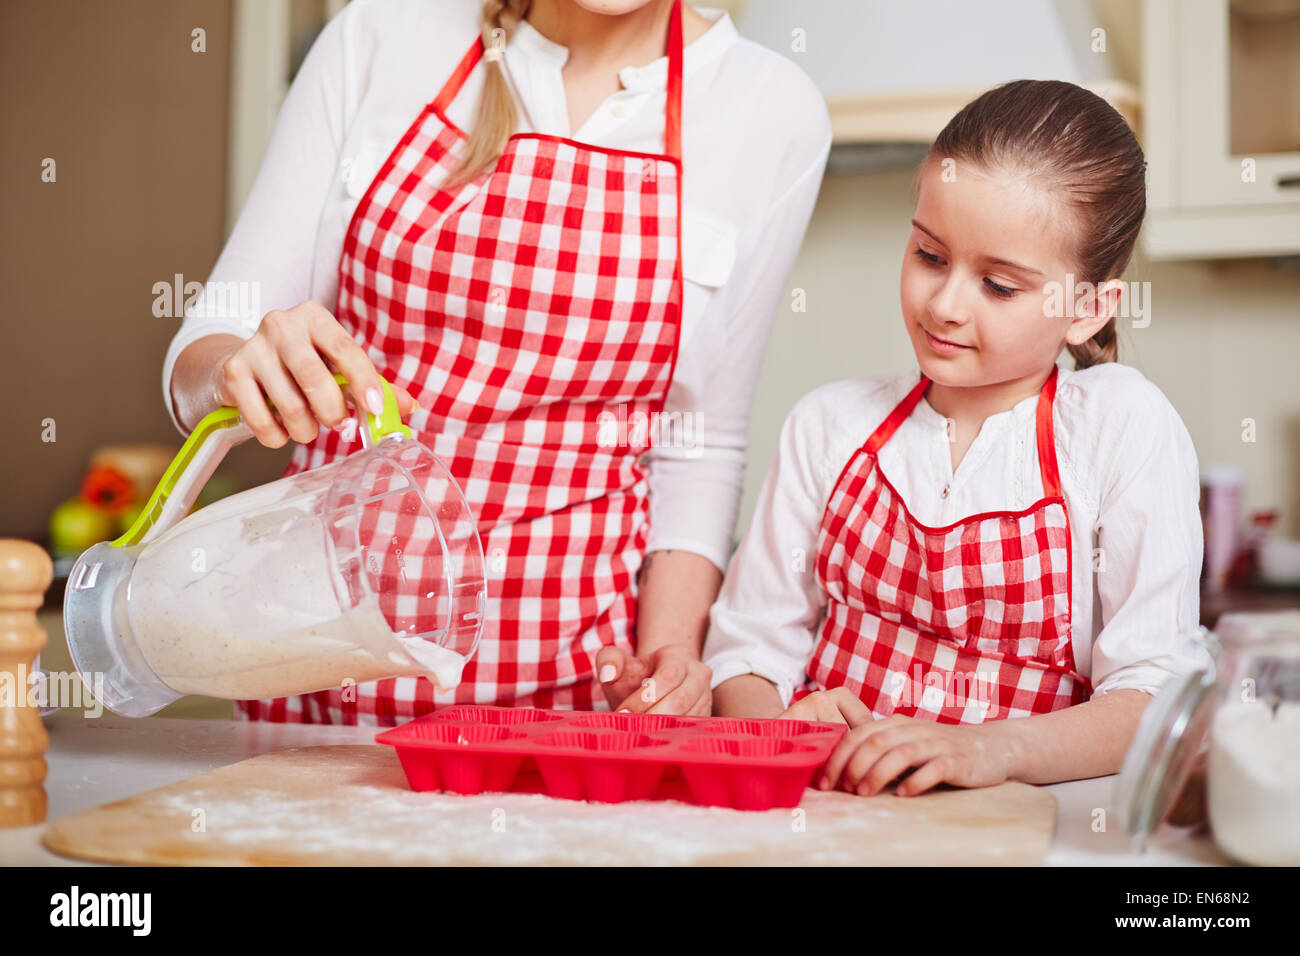 Curious girl looking at her mother filling in muffin forms with liquid dough - Stock Image